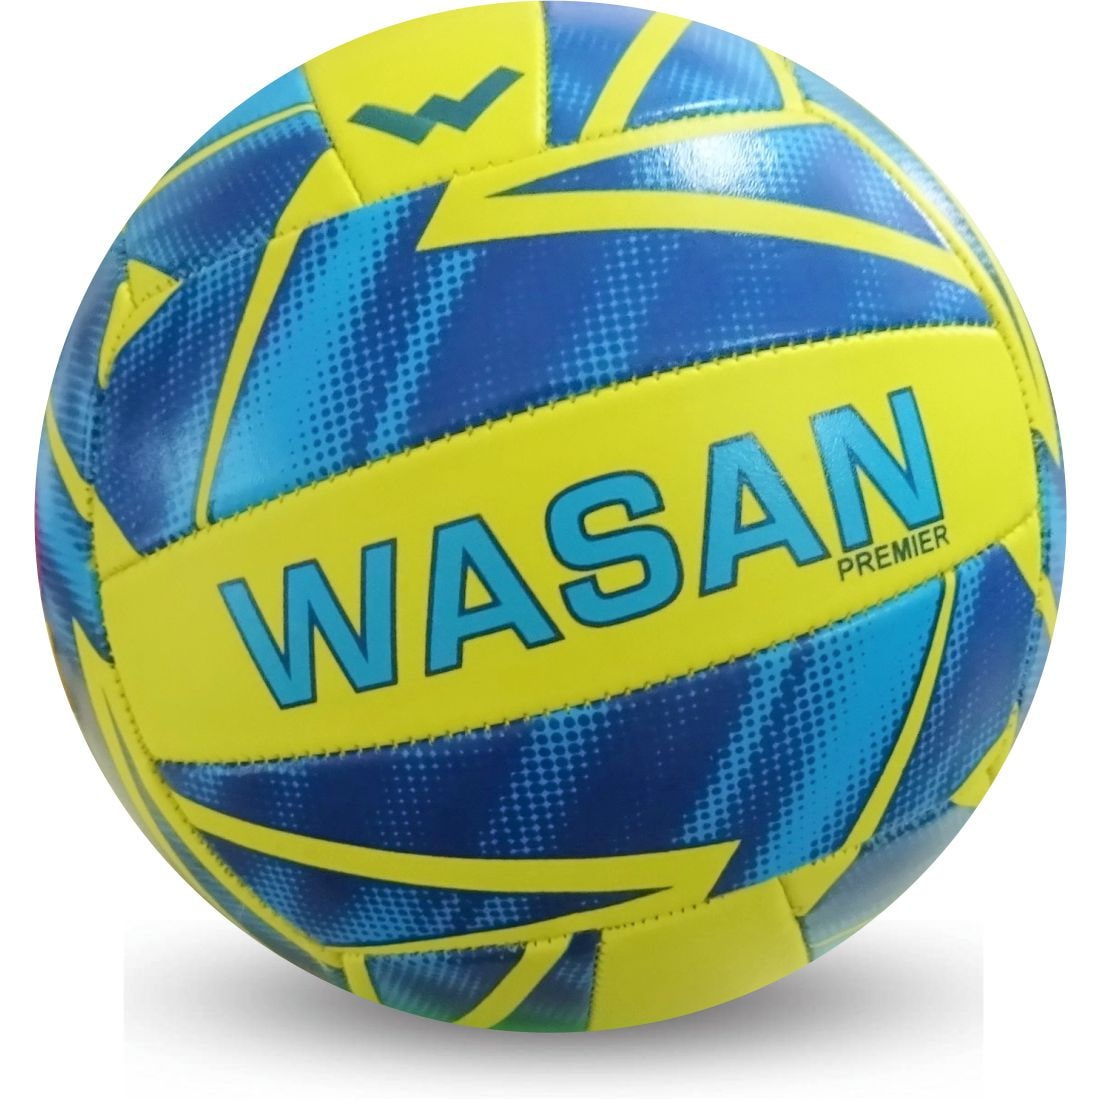 Wasan Premier Volleyball Yellow/Blue Standard Size  12 Yrs and Above  by Wasan Exports